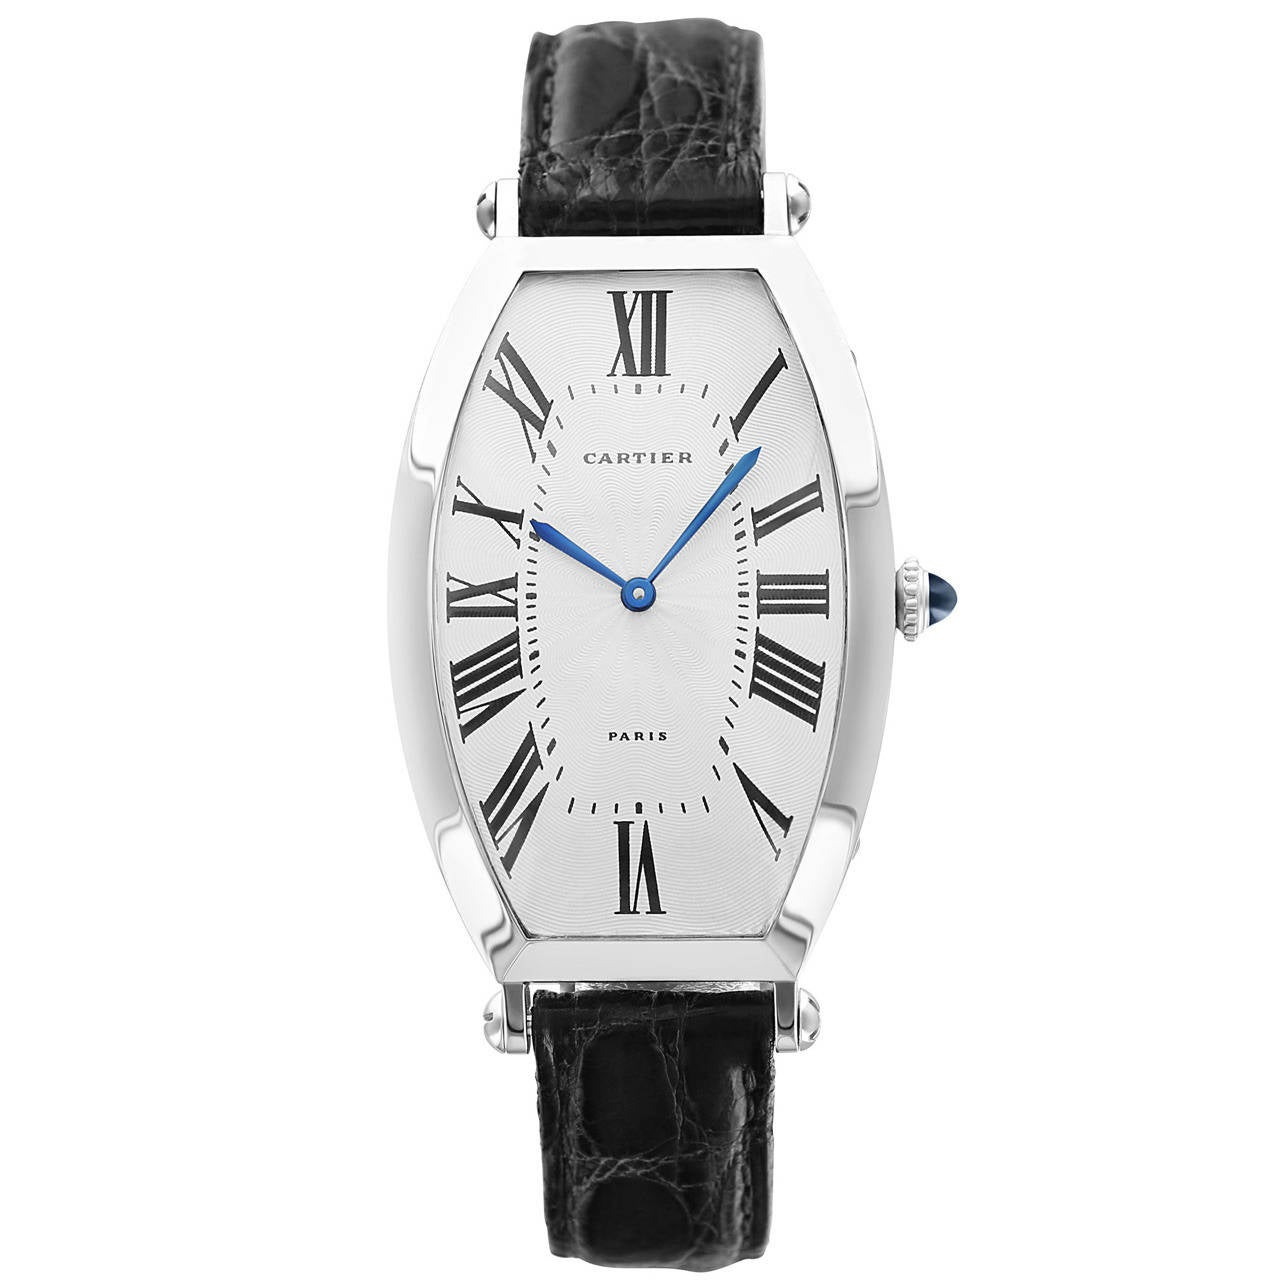 Cartier Platinum: Cartier Platinum Tonneau Wristwatch Ref 2435 At 1stdibs